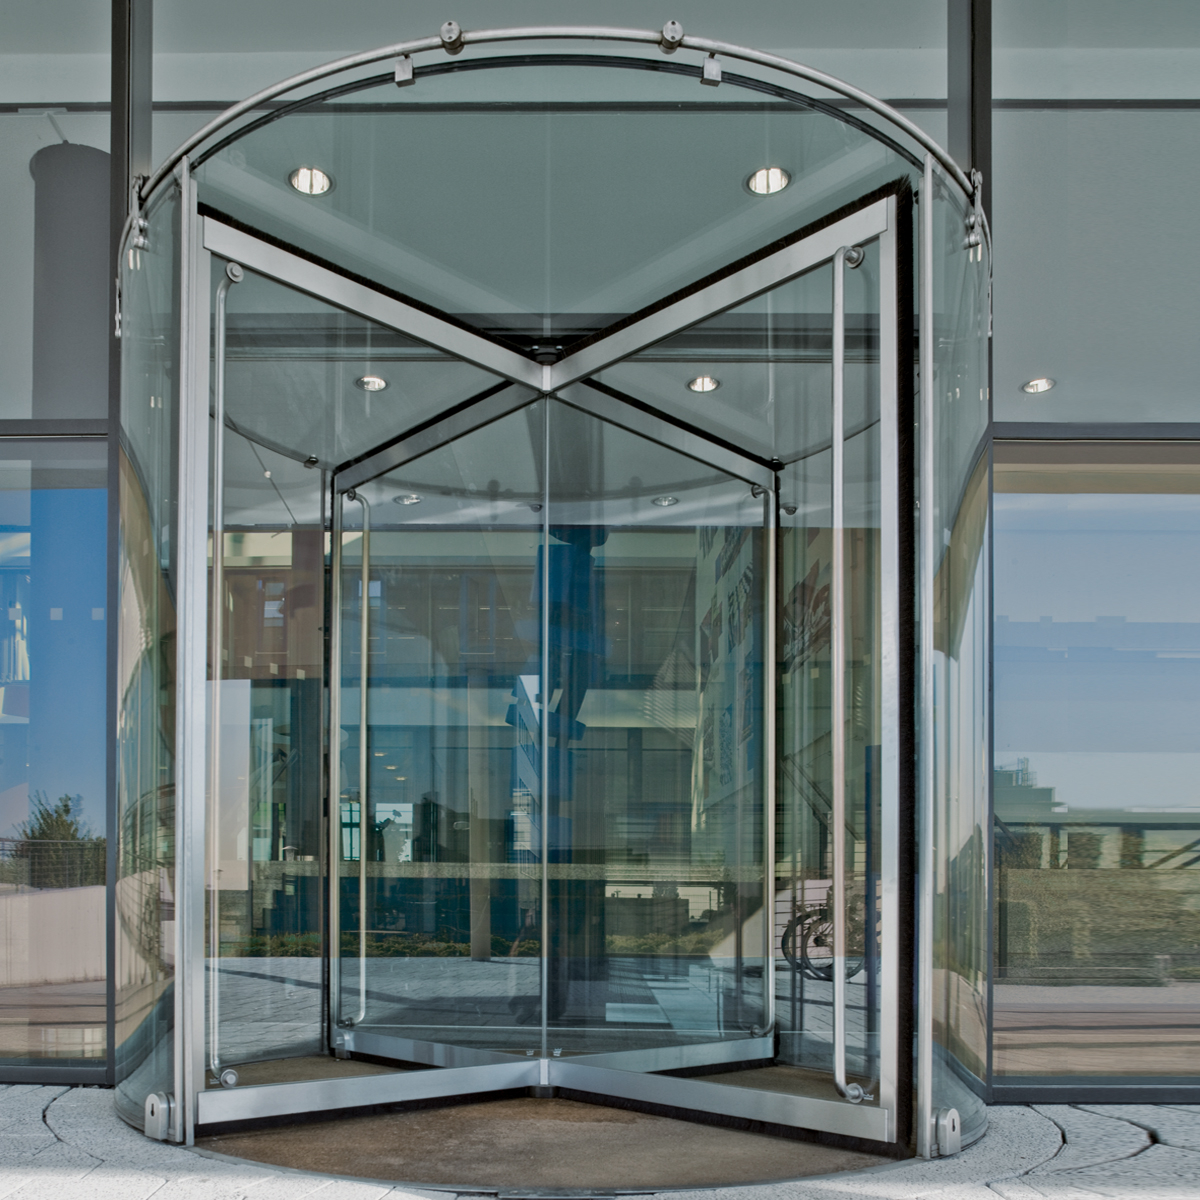 Types of Automatic Revolving Doors & Egy Gate | Automatic Revolving Doors